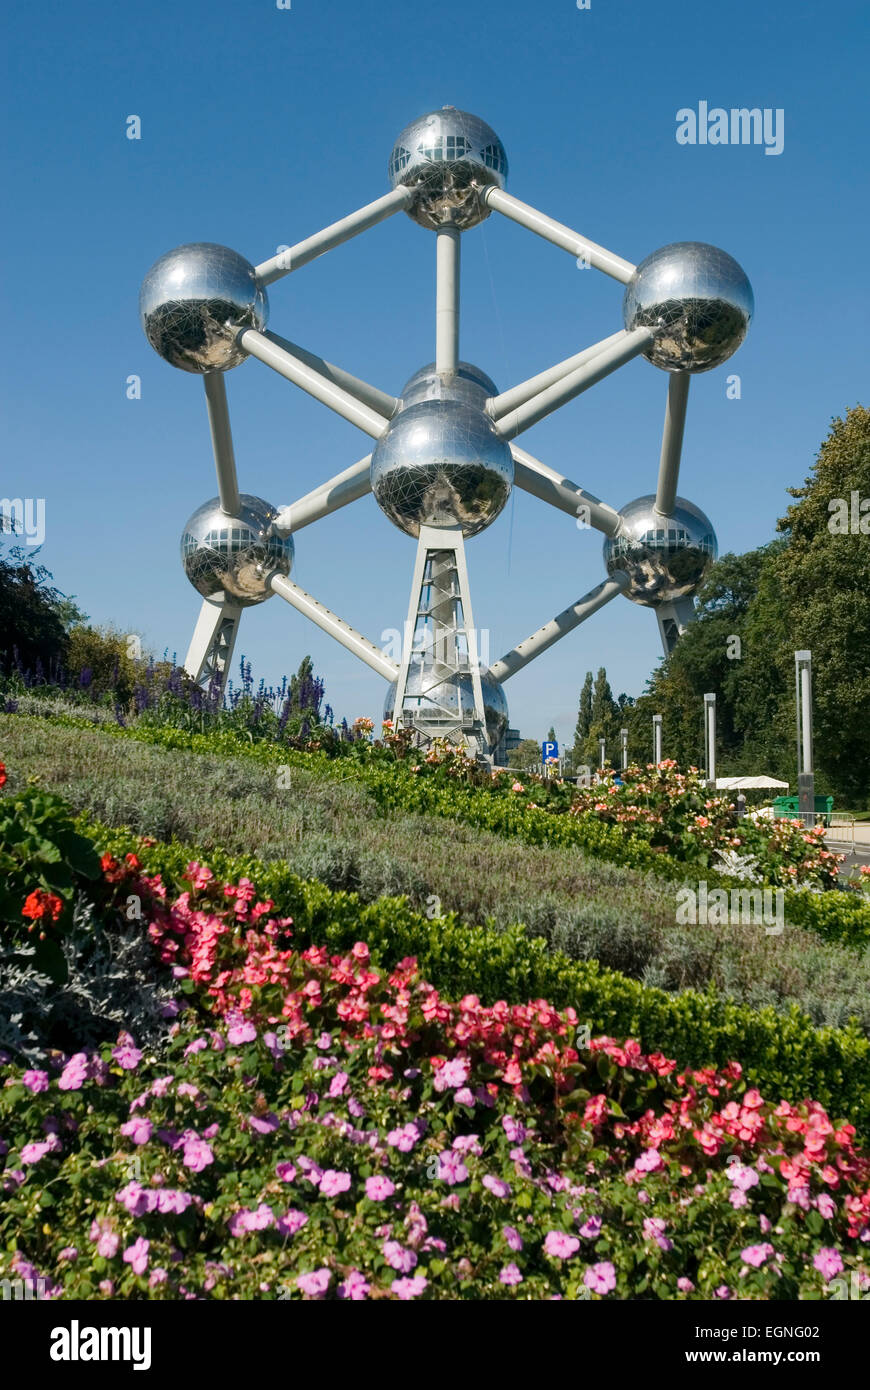 Atomium Brussels Belgium Europe Worldfamous Monument of a iron atomic nucleus, in 2018 60 years old - Stock Image